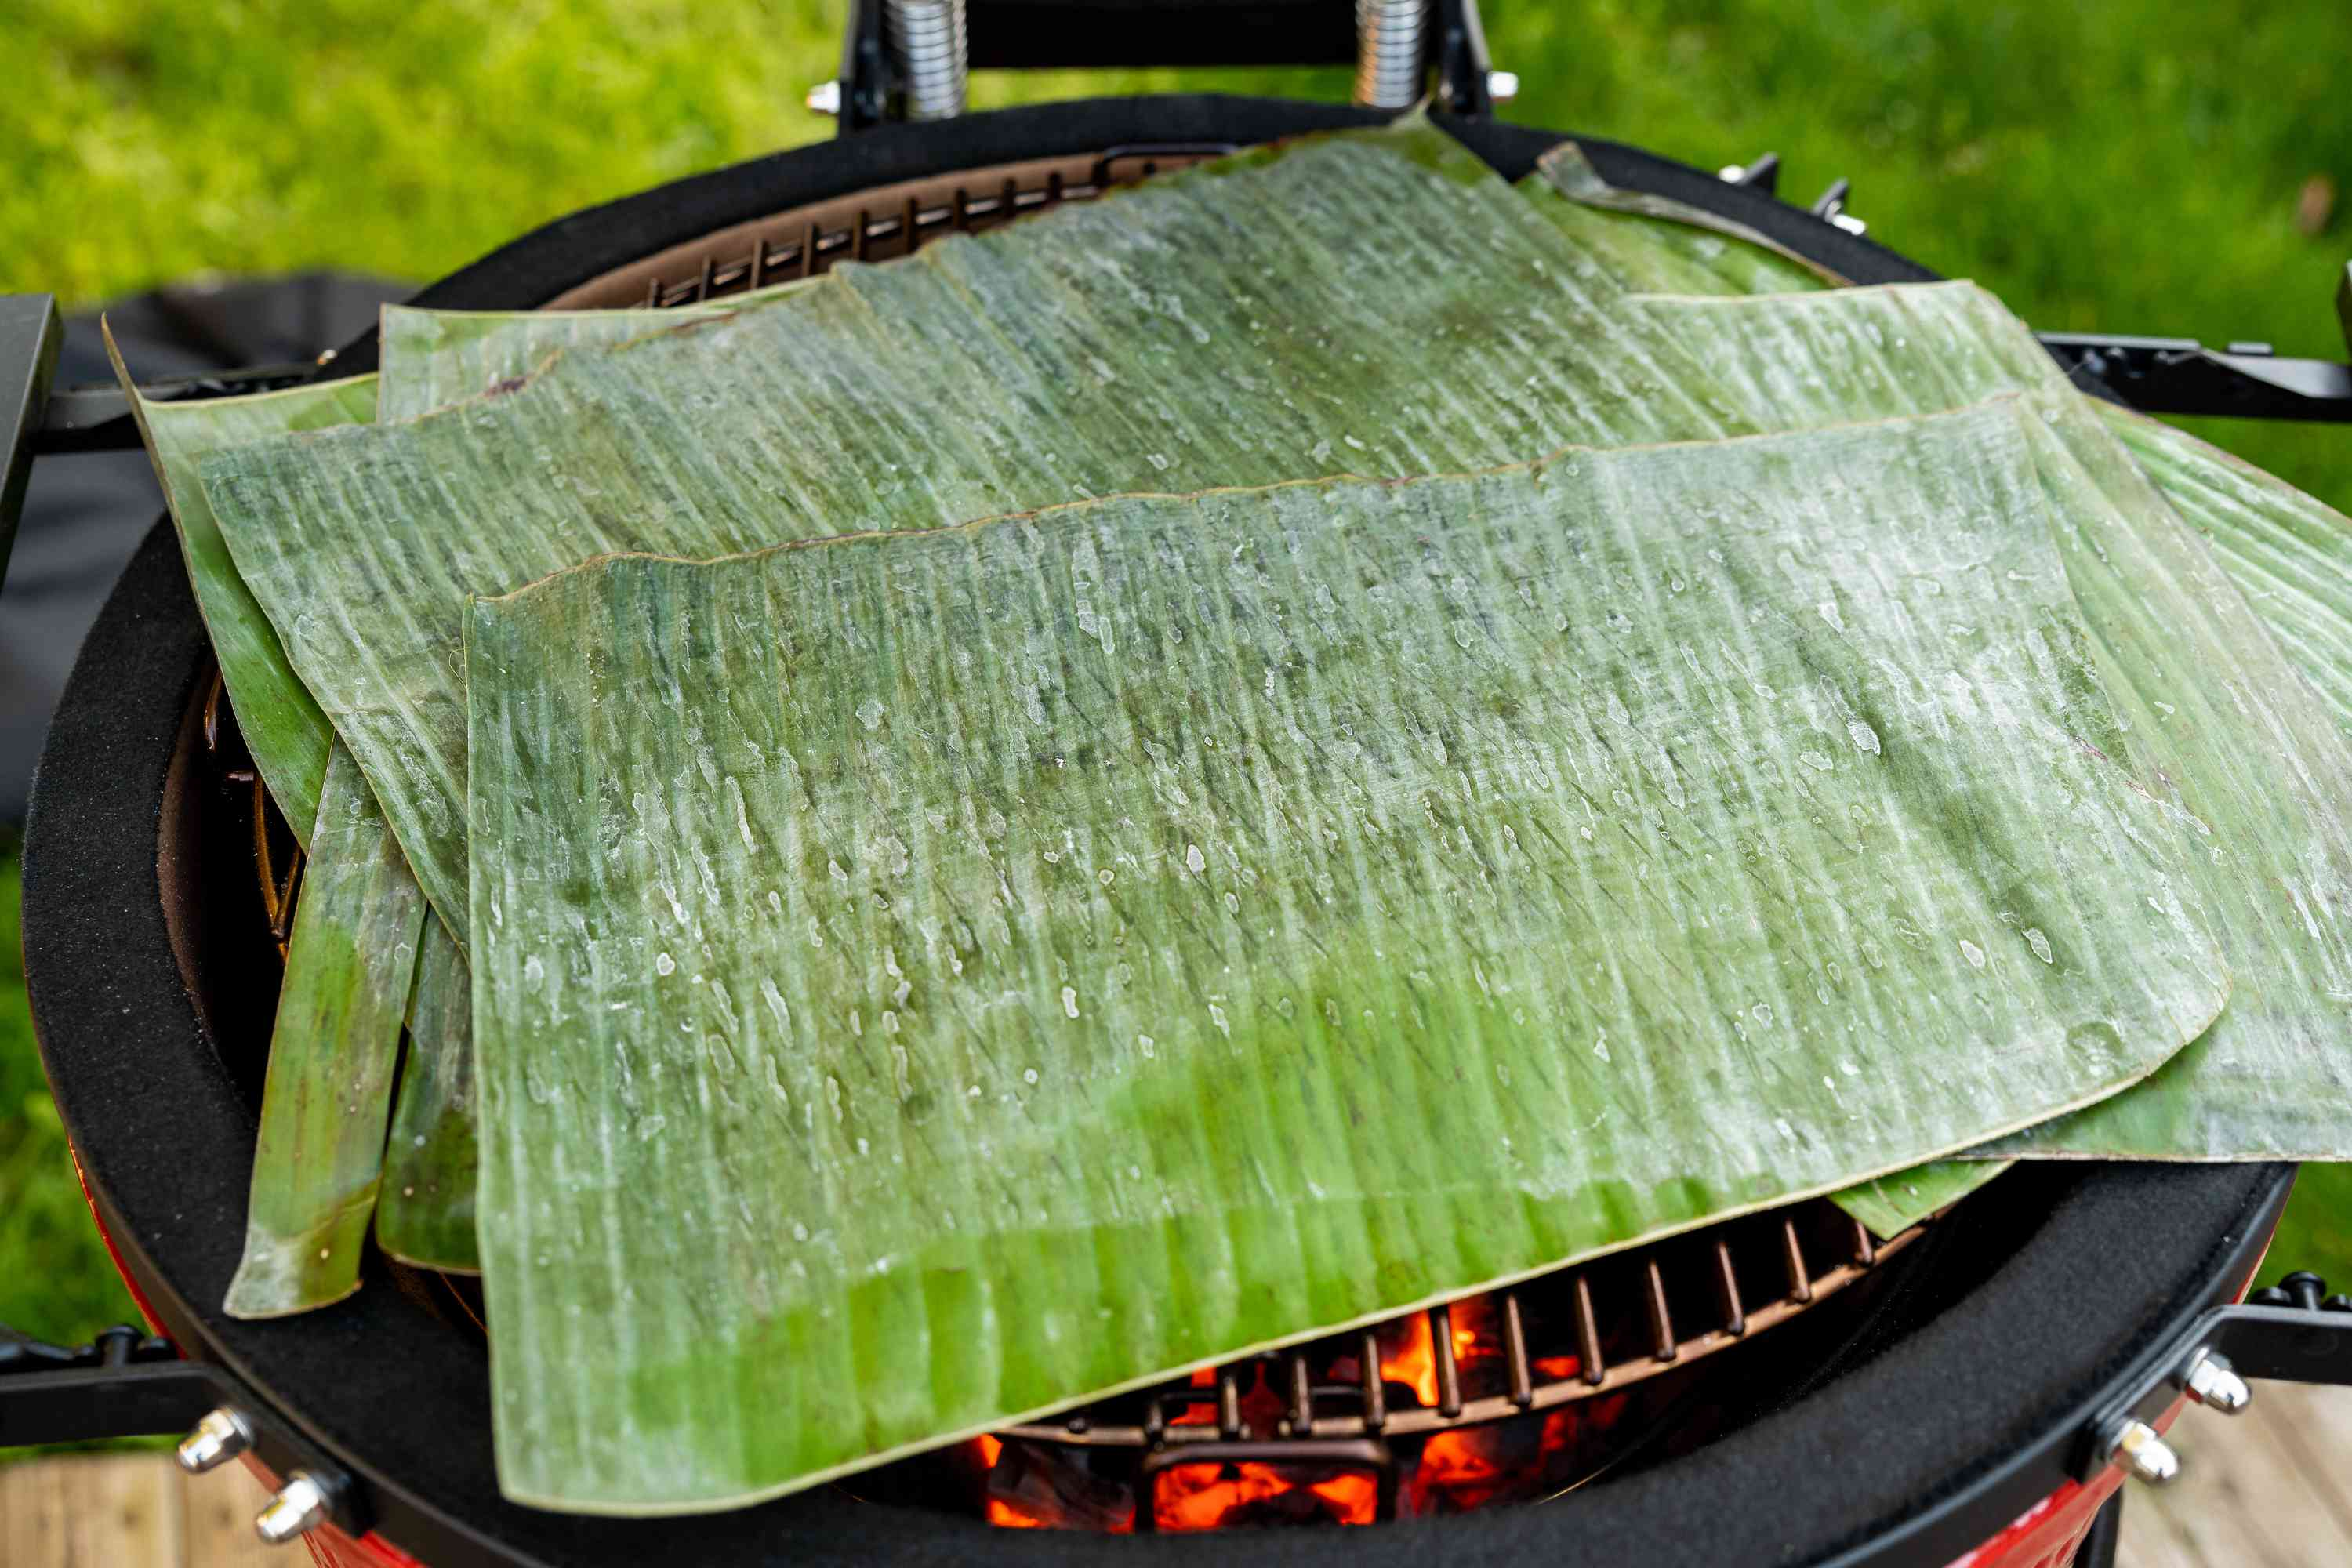 banana leaves on a grill